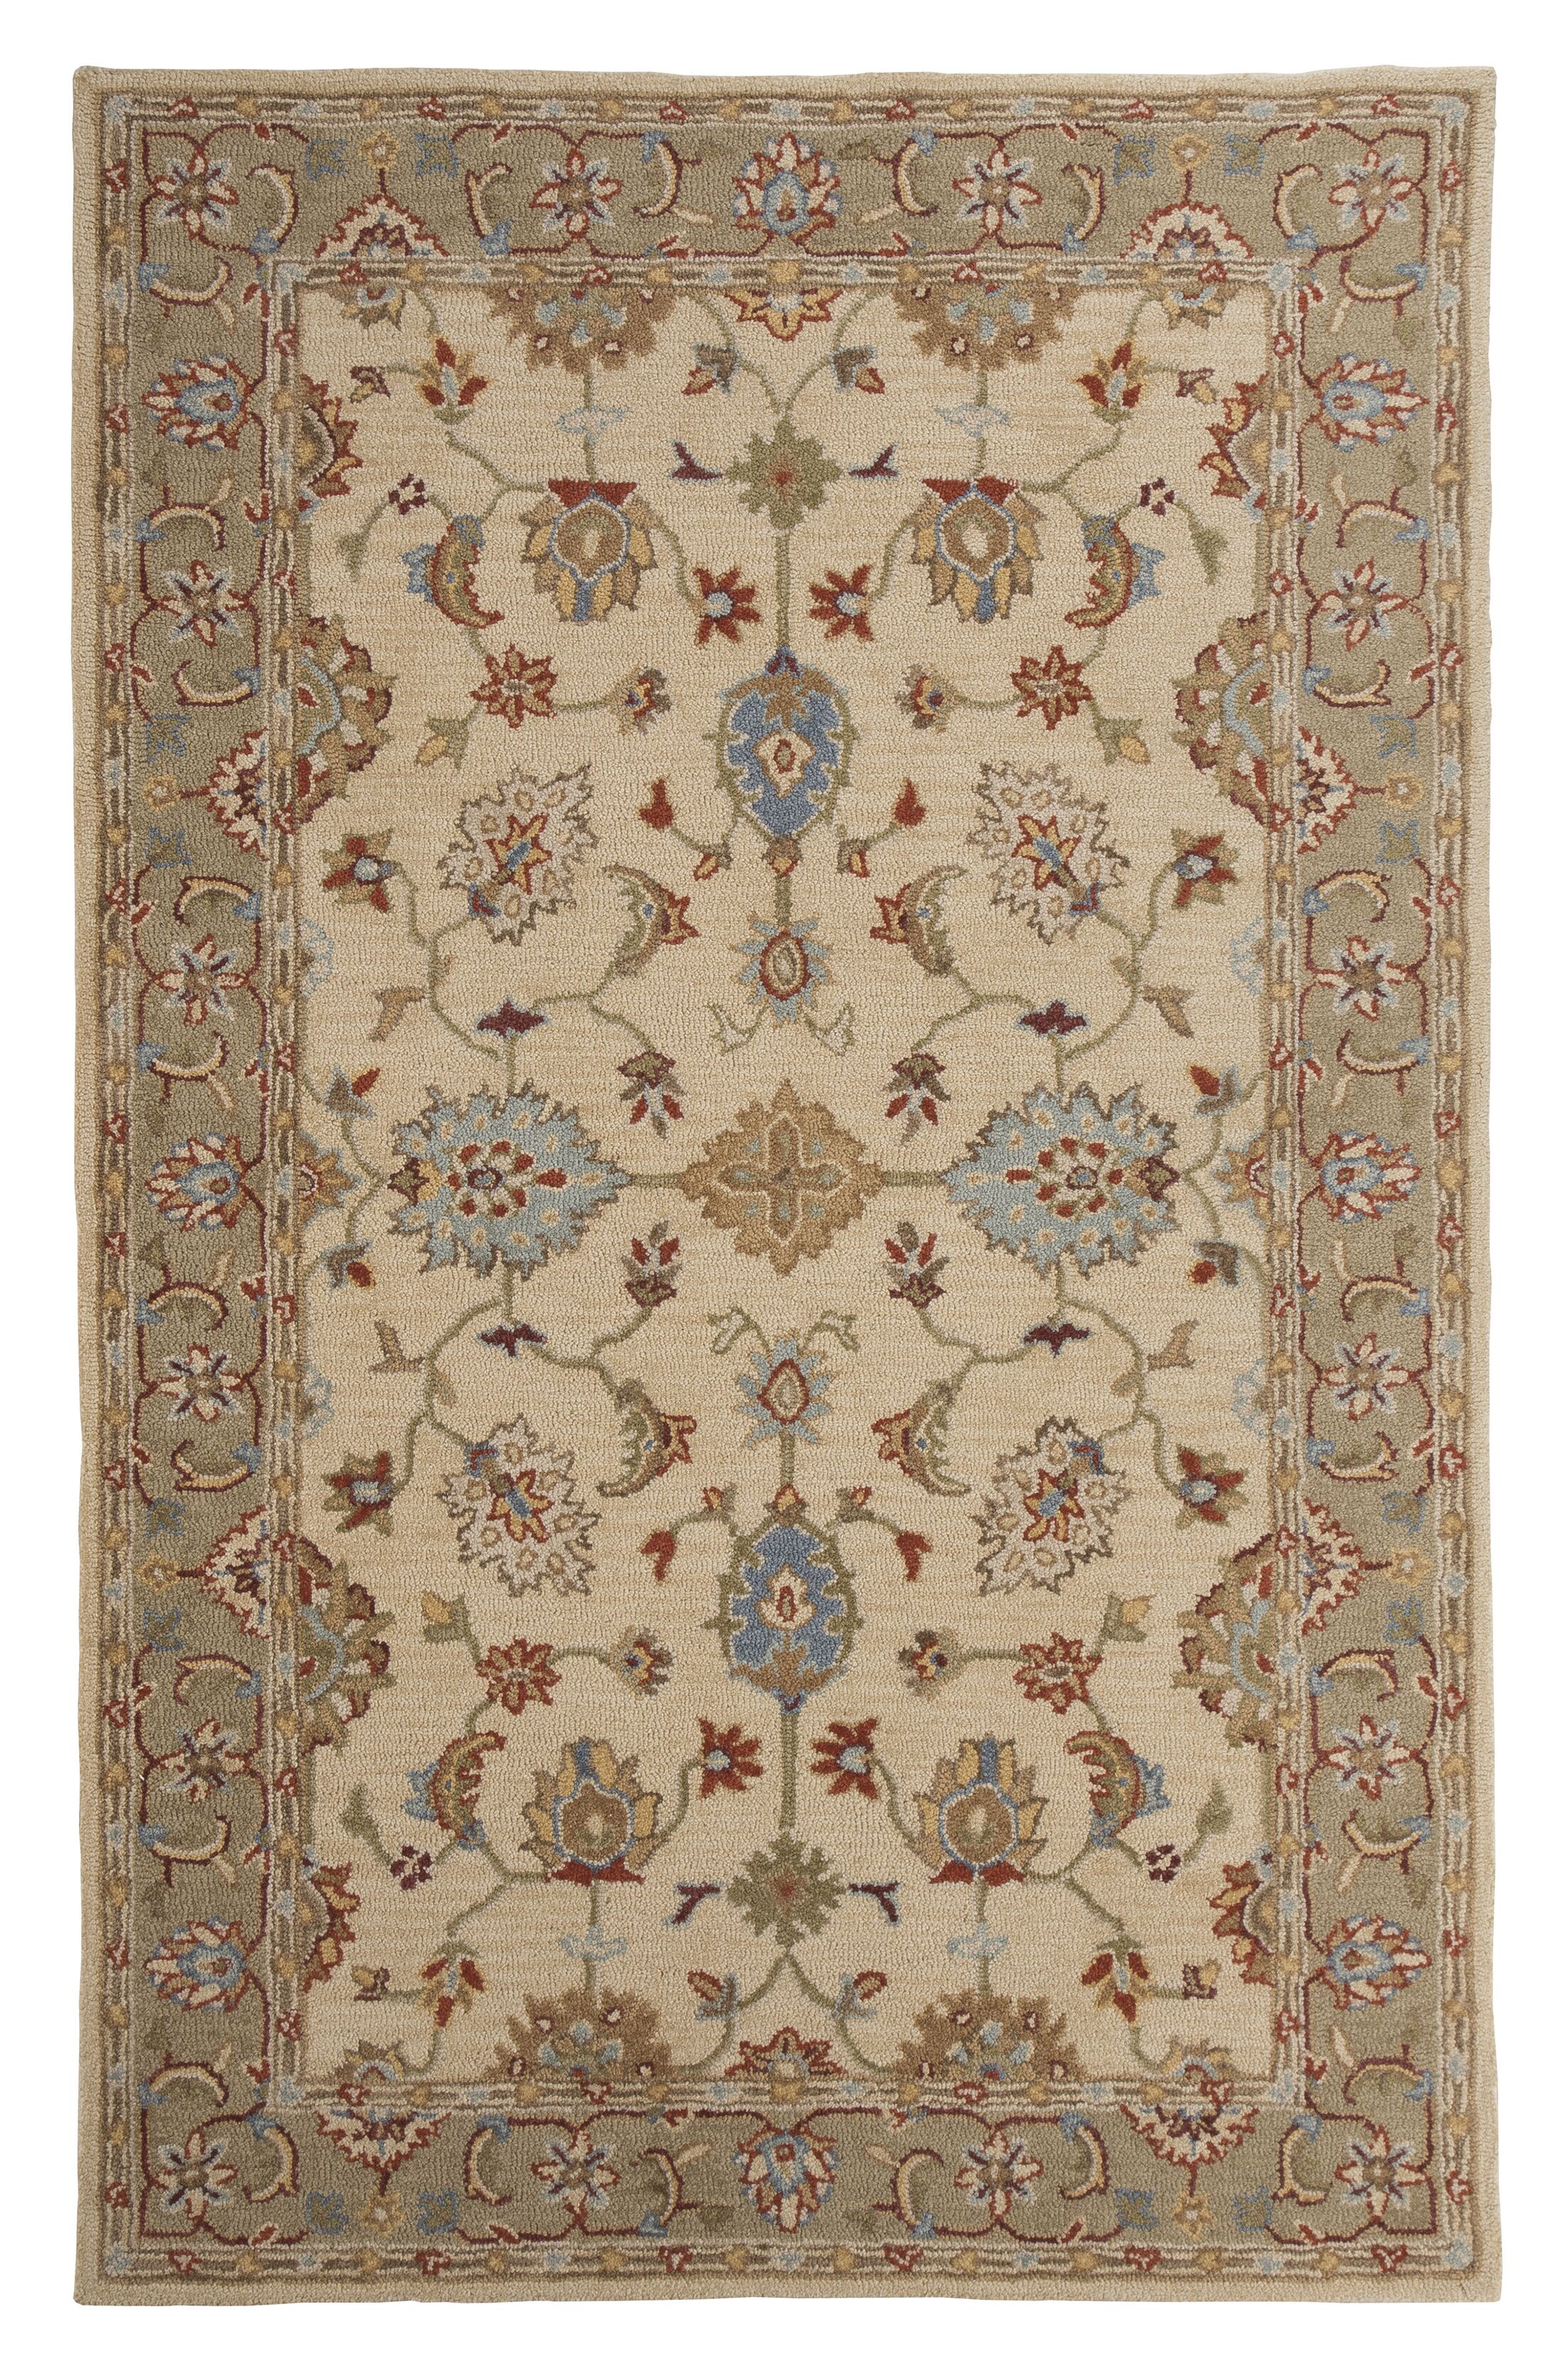 Yarber Hand-Tufted Wool Beige/Green/Blue Area Rug Rug Size: Rectangle 8' x 10'